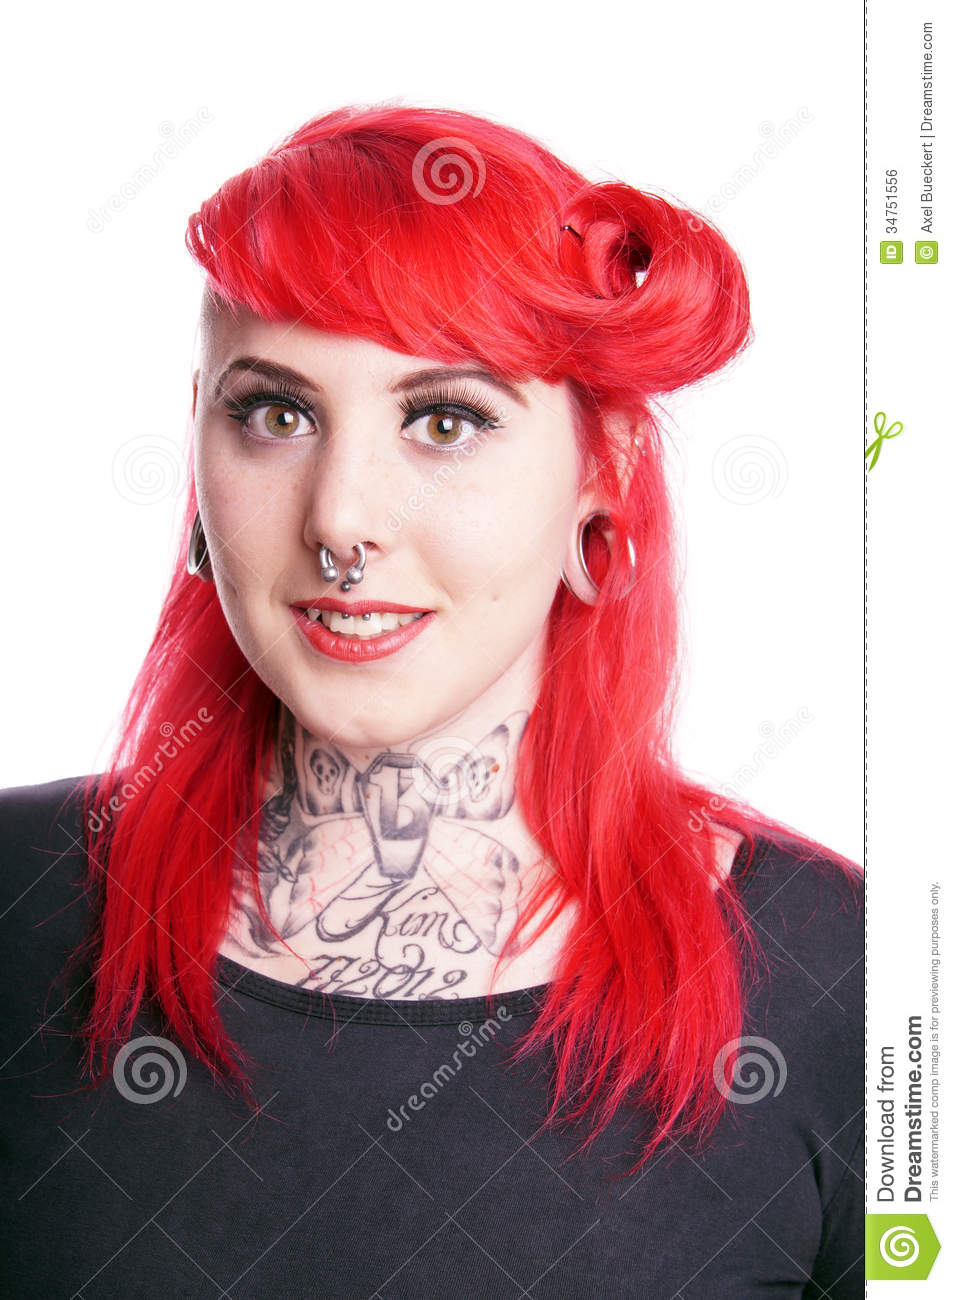 Woman With Facial Piercings Stock Photo Image 34751556